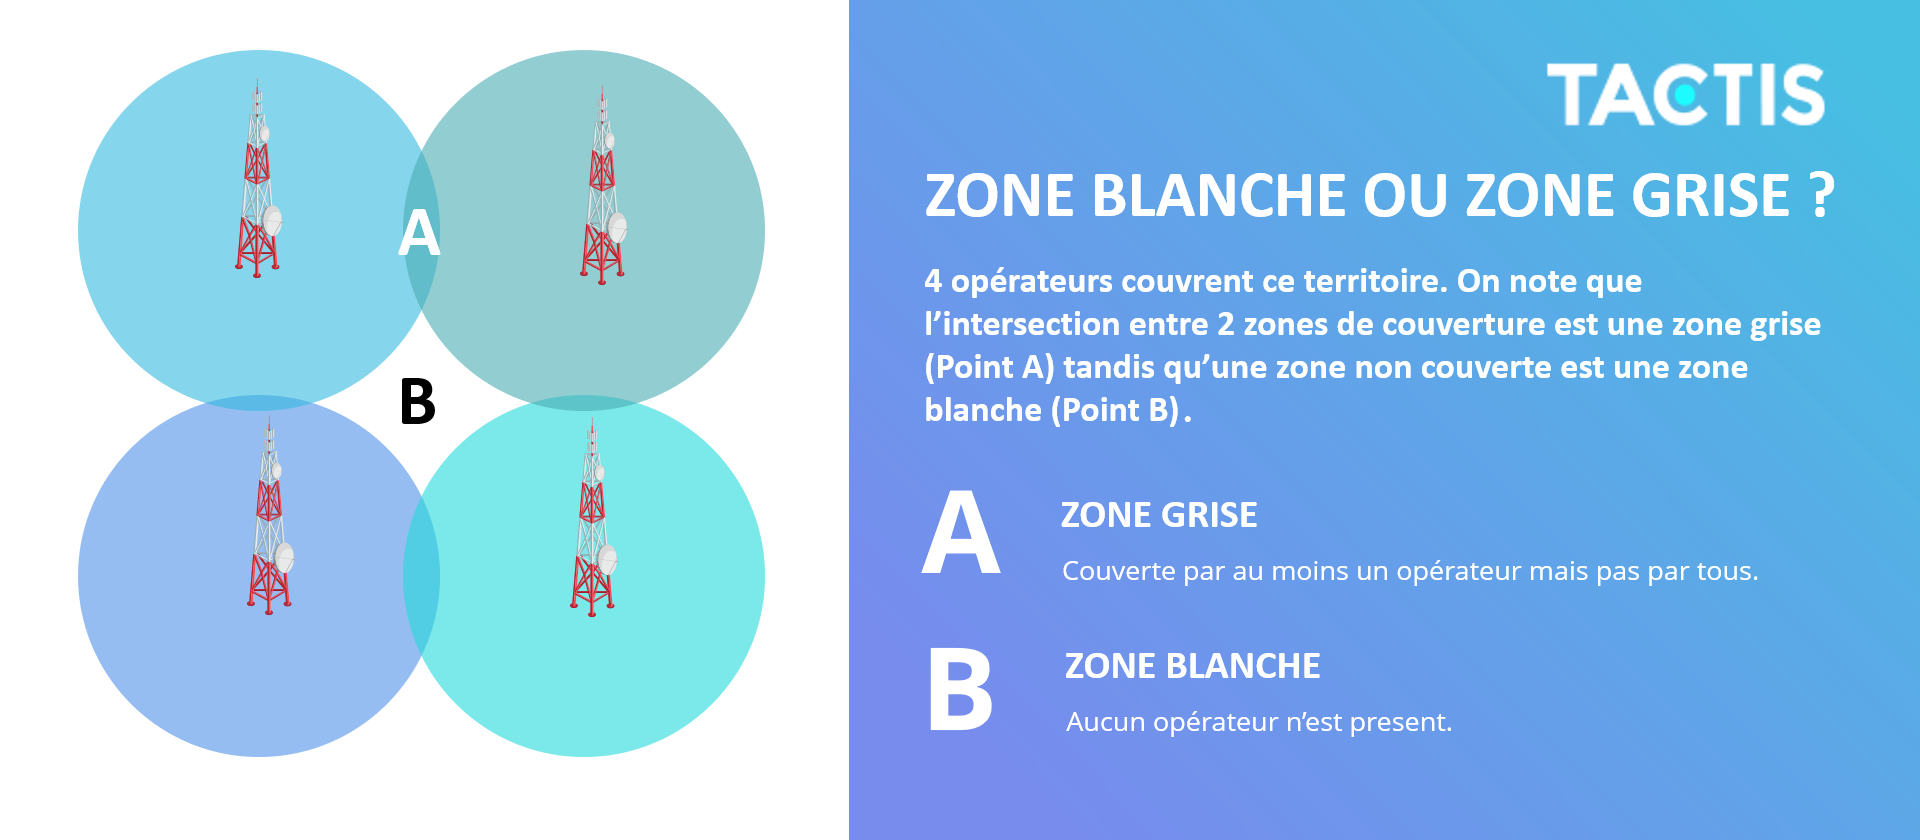 Tactis - Zone blanche ou zone grise ?